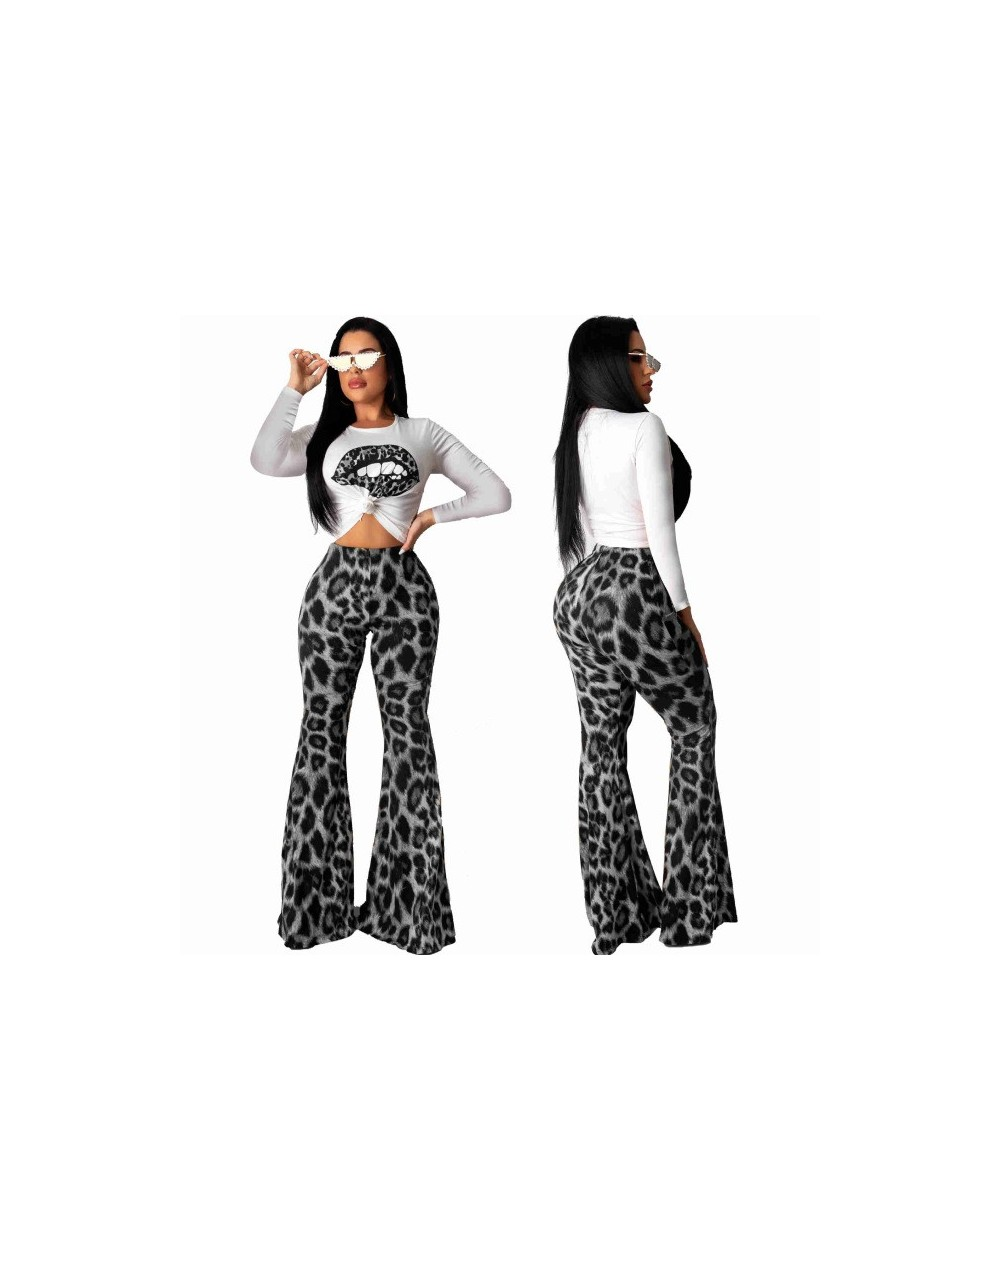 Woman Leopard Print 2 Pieces Sets Outfits Sexy Long Sleeve Top and Flare Pants Set Evening Party Matching Sets Summer Clothe...